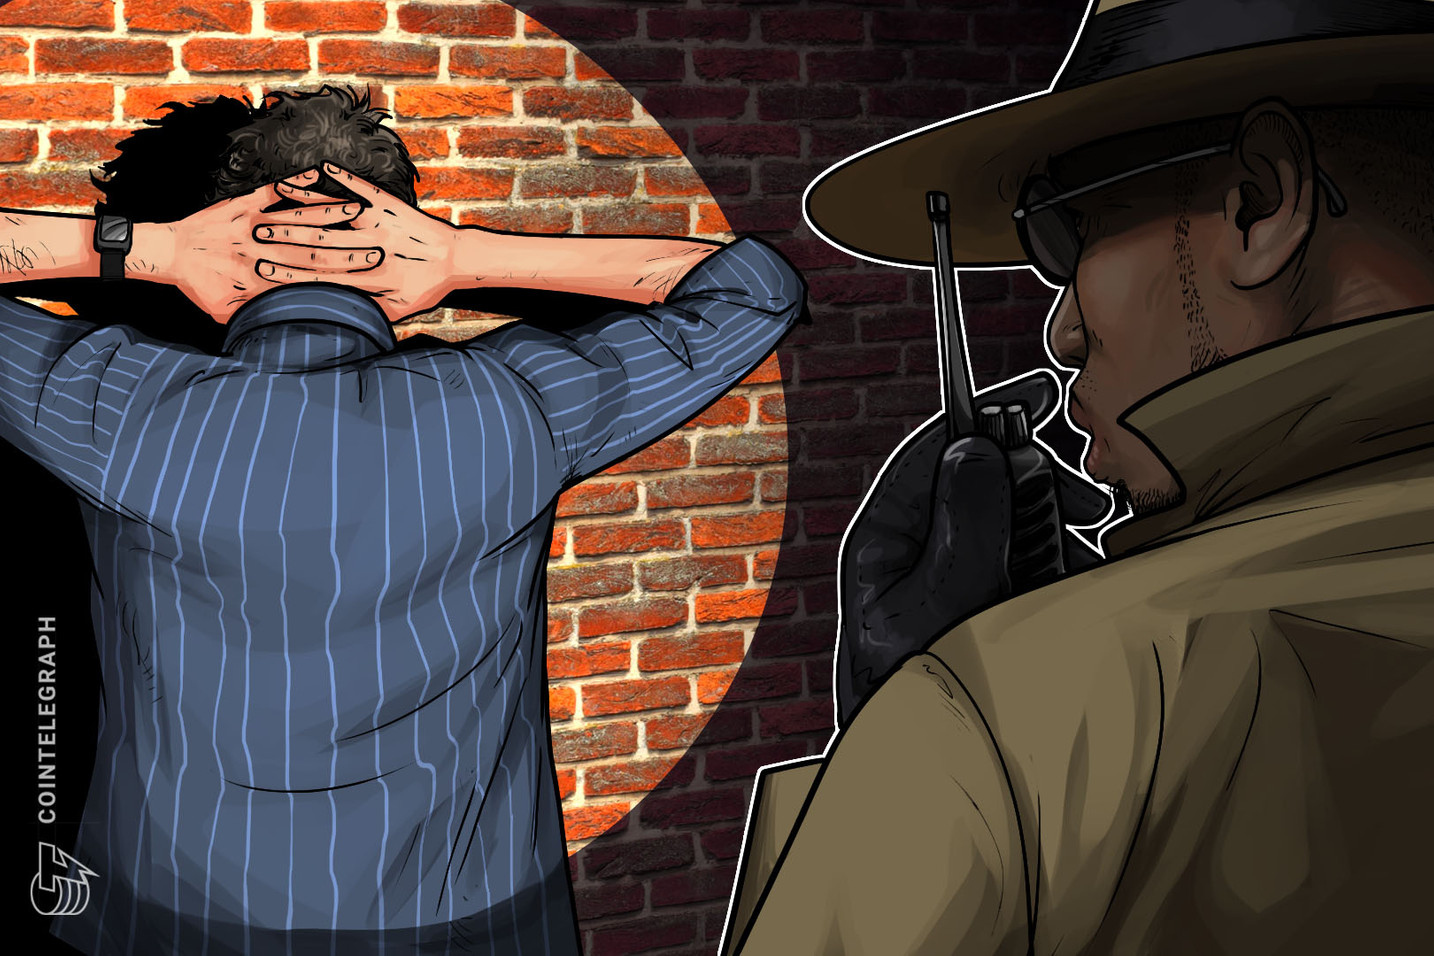 Bulgarian Prosecutors Detain Three Hackers Allegedly Involved in $5 Million Crypto Theft